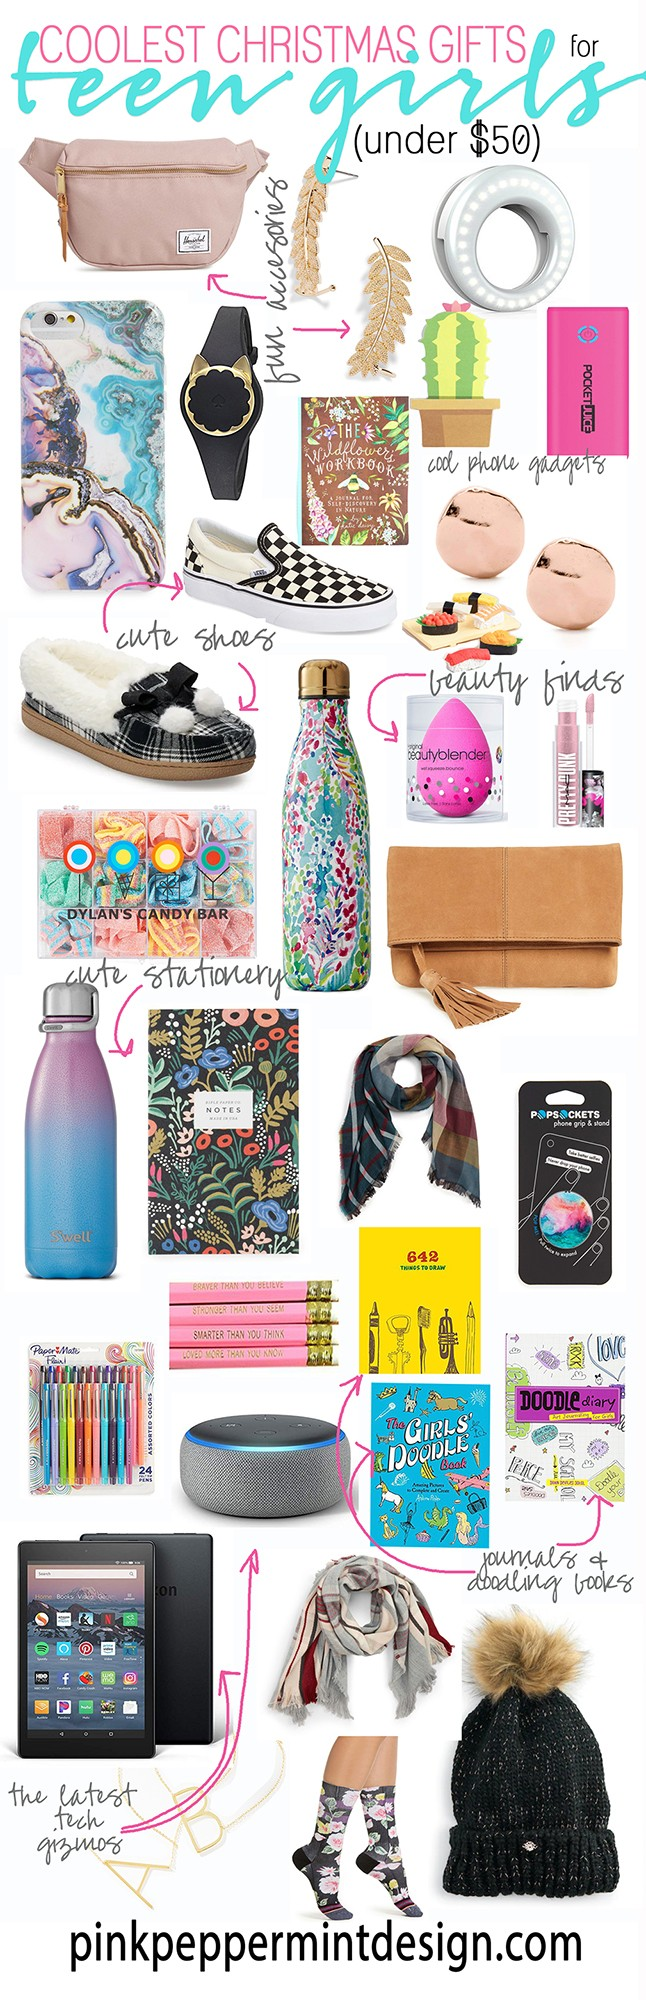 33435a47c17 I hope you find this coolest Christmas gifts for teen girls gift guide  helpful! You can find all of my other gift guides here.